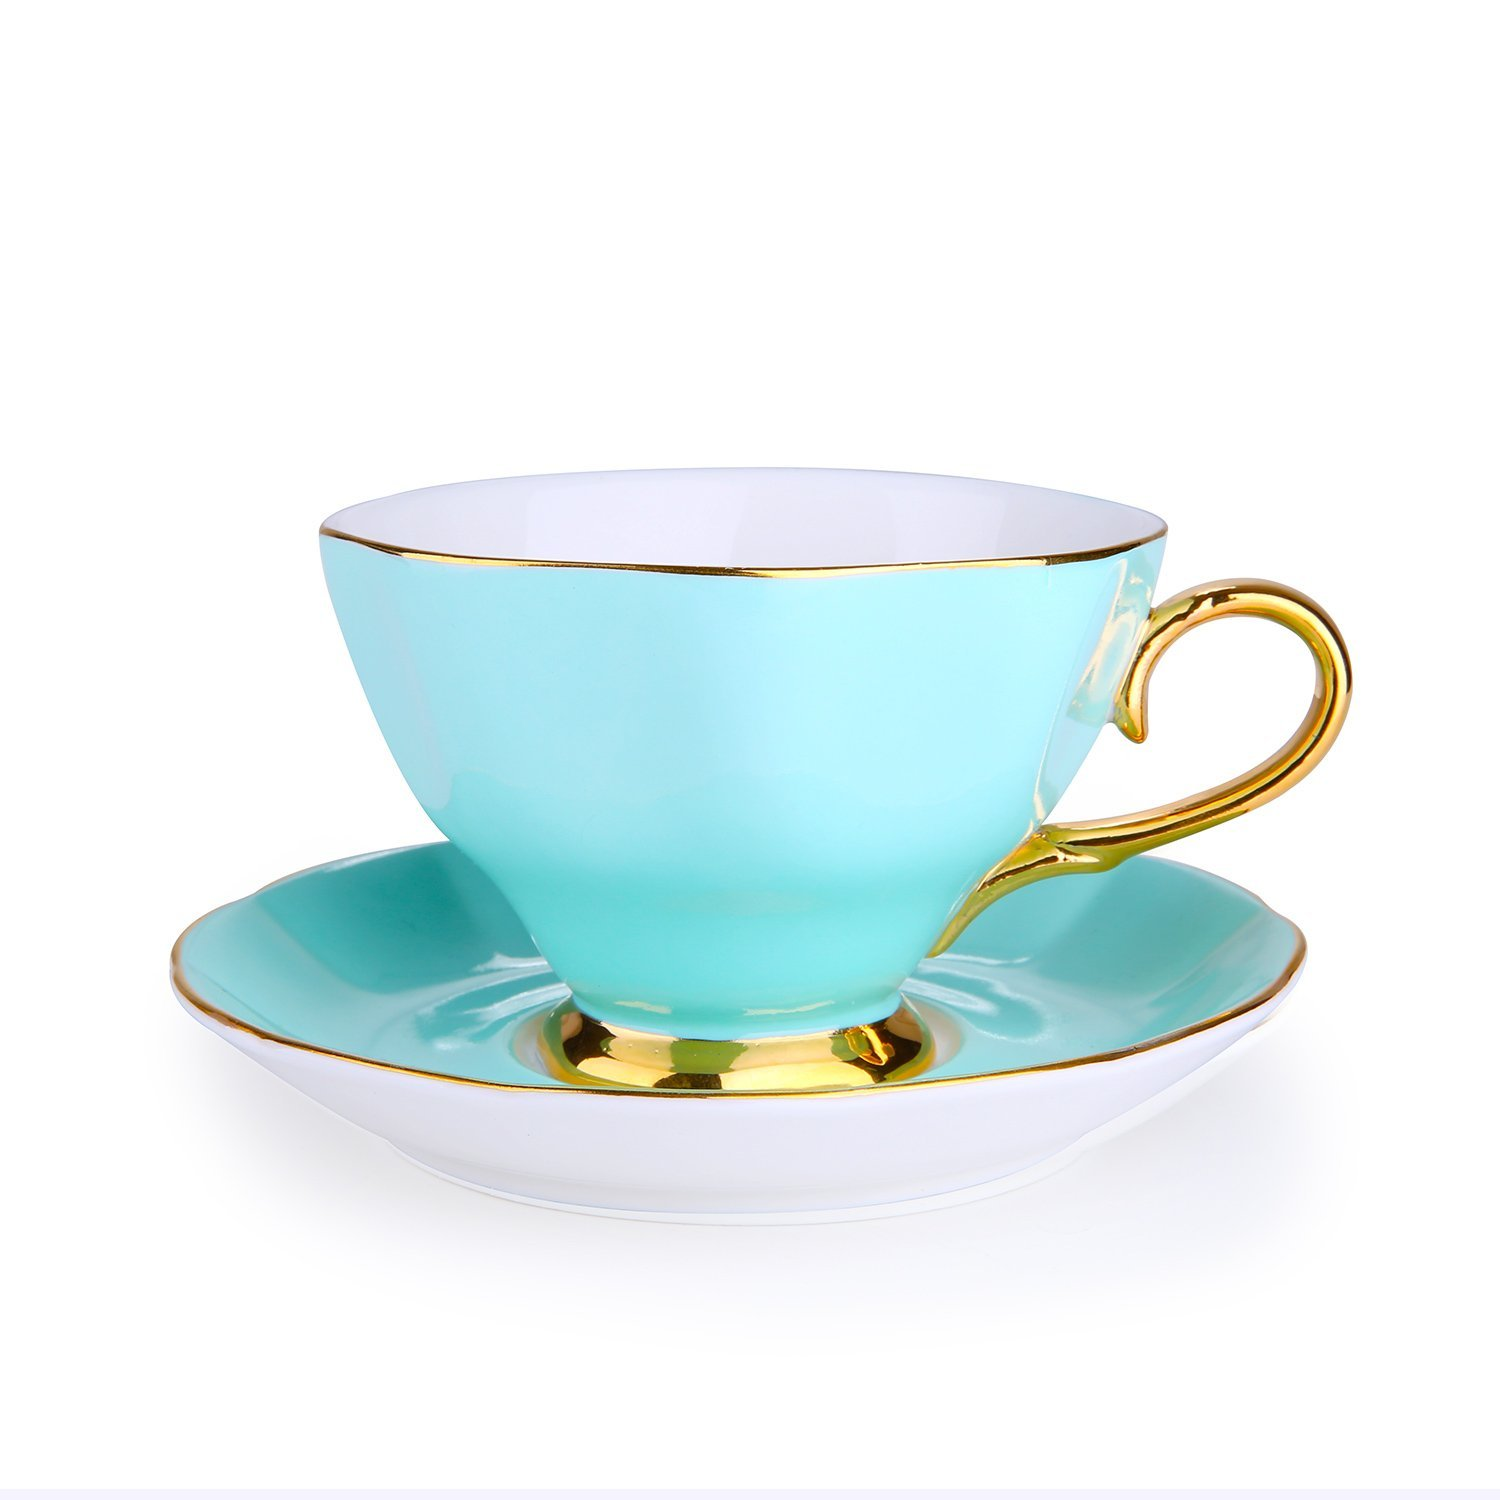 Porcelain Classic Tea/Coffee Cups and Saucers Set with Gold Plated Rims&Handles,Ceramic Espresso Latte Coffee Cup Teacup and Saucer Sets for Office Home Gift,Assorted Color,7 Ounces (GREEN)